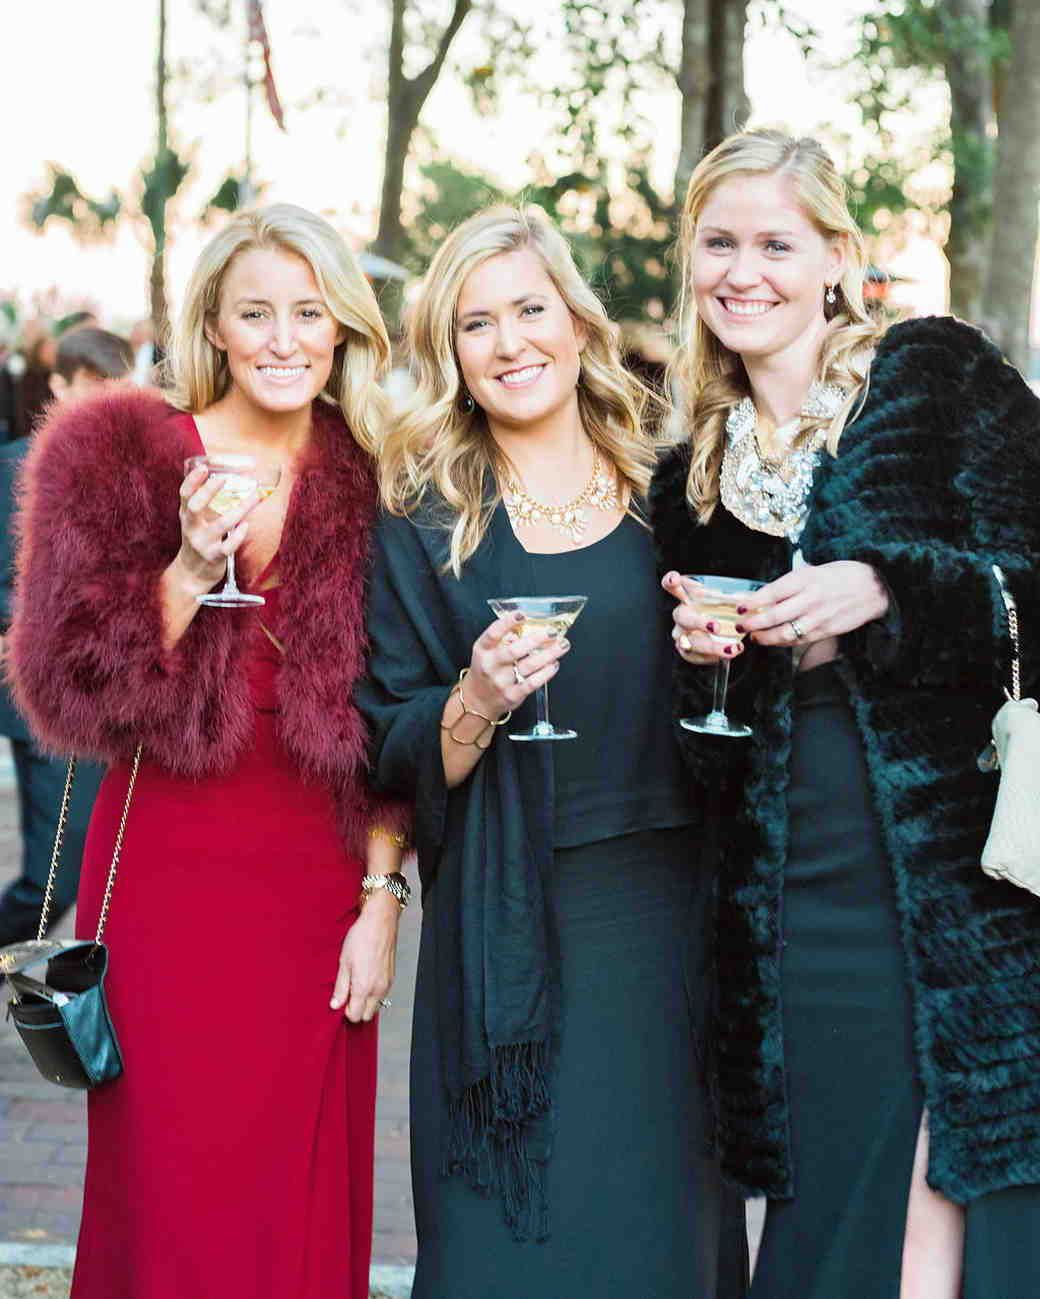 20 Seasonal Outfit Ideas for Winter Wedding Guests